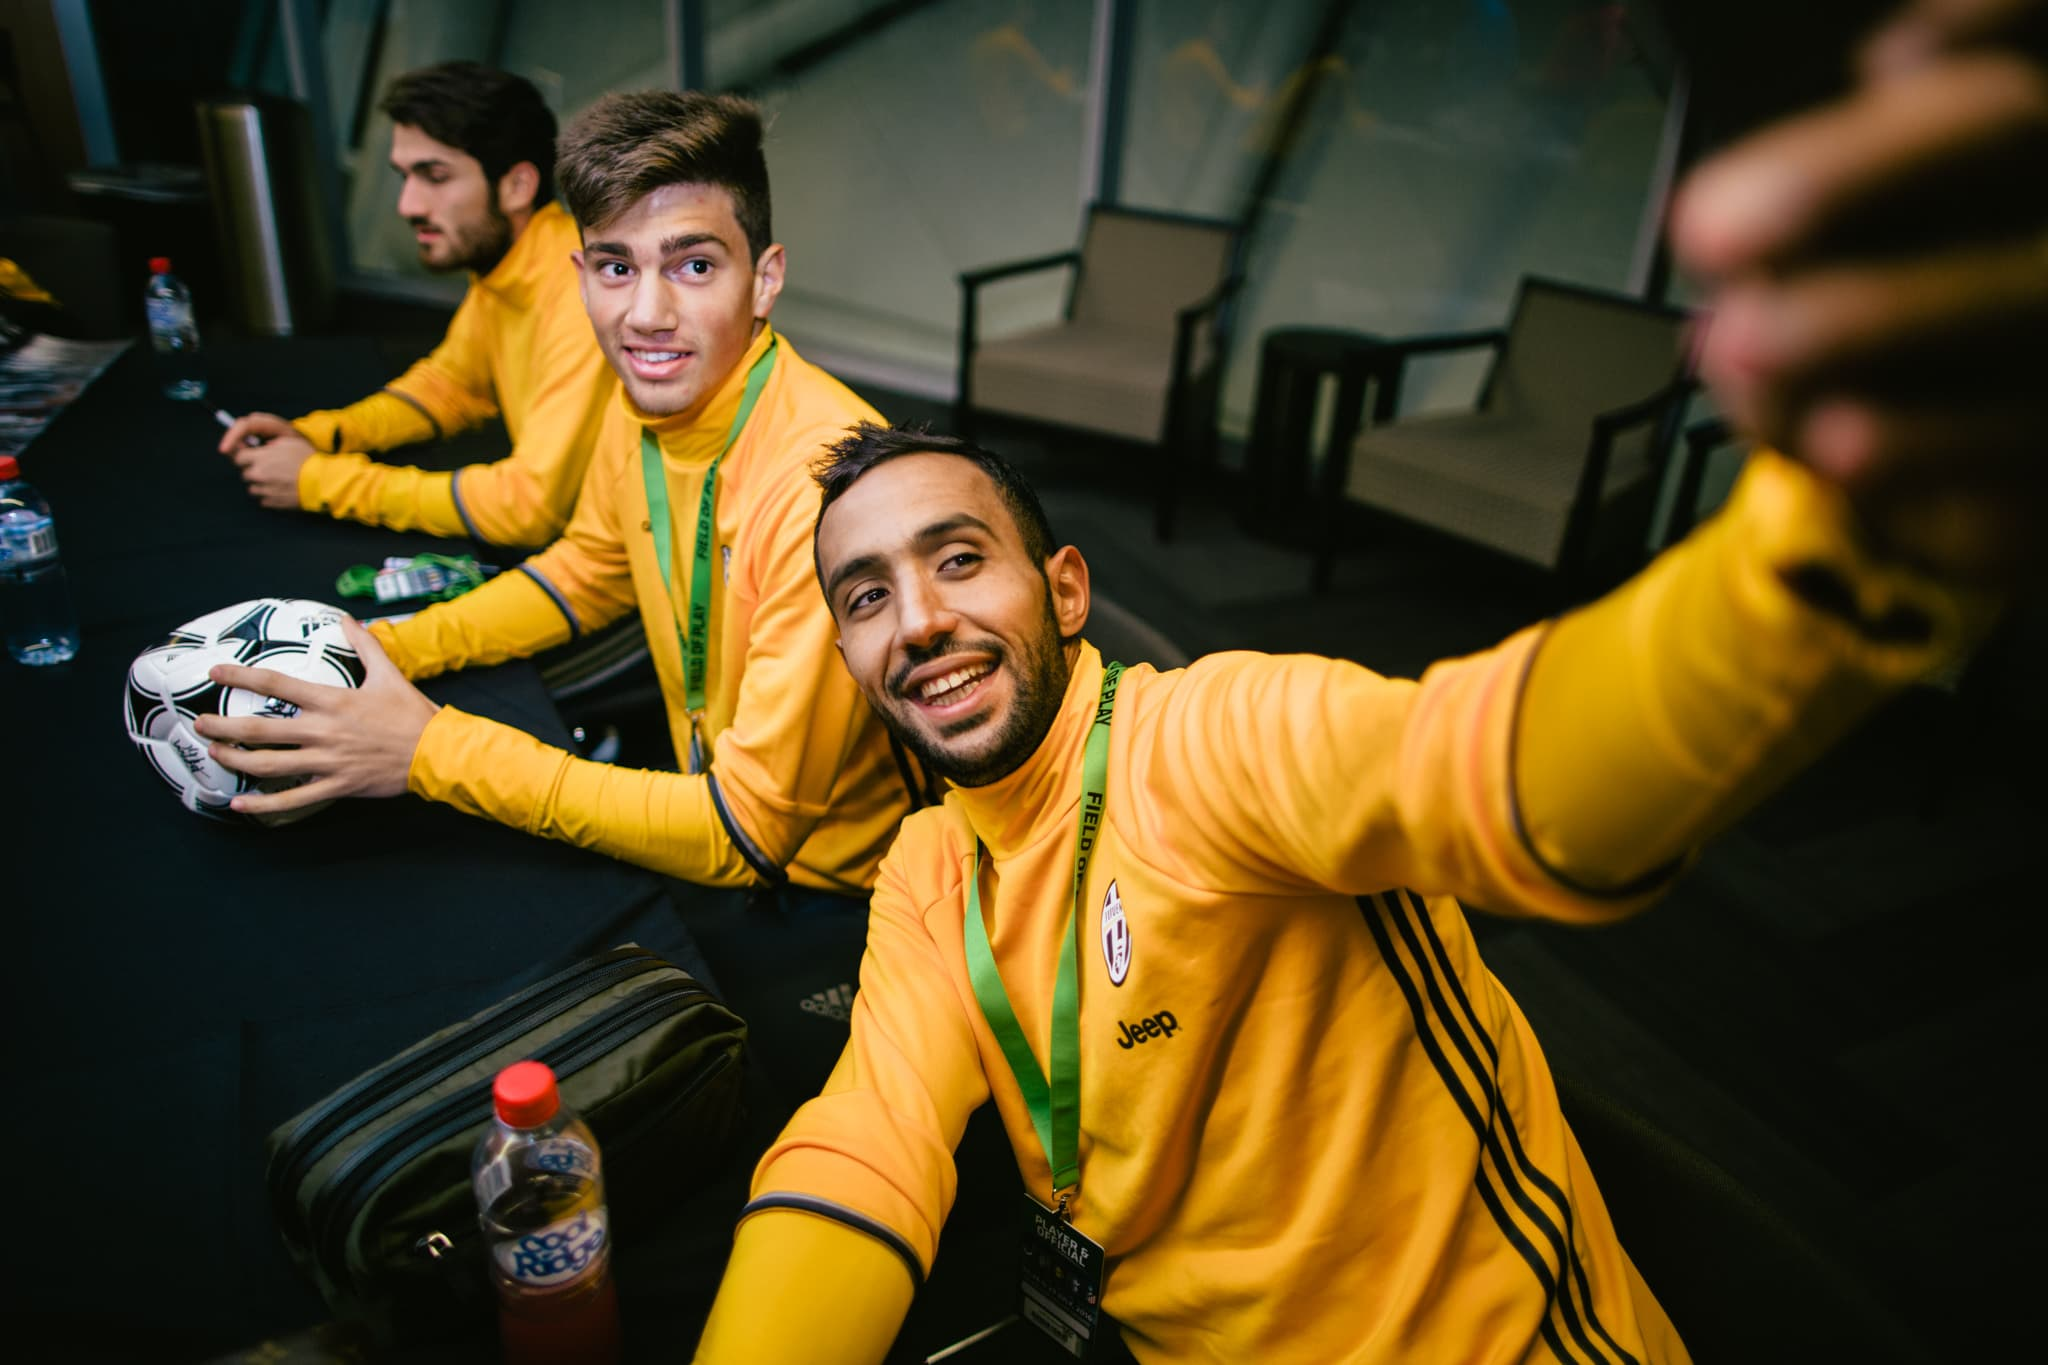 juventus players having fun with selfies